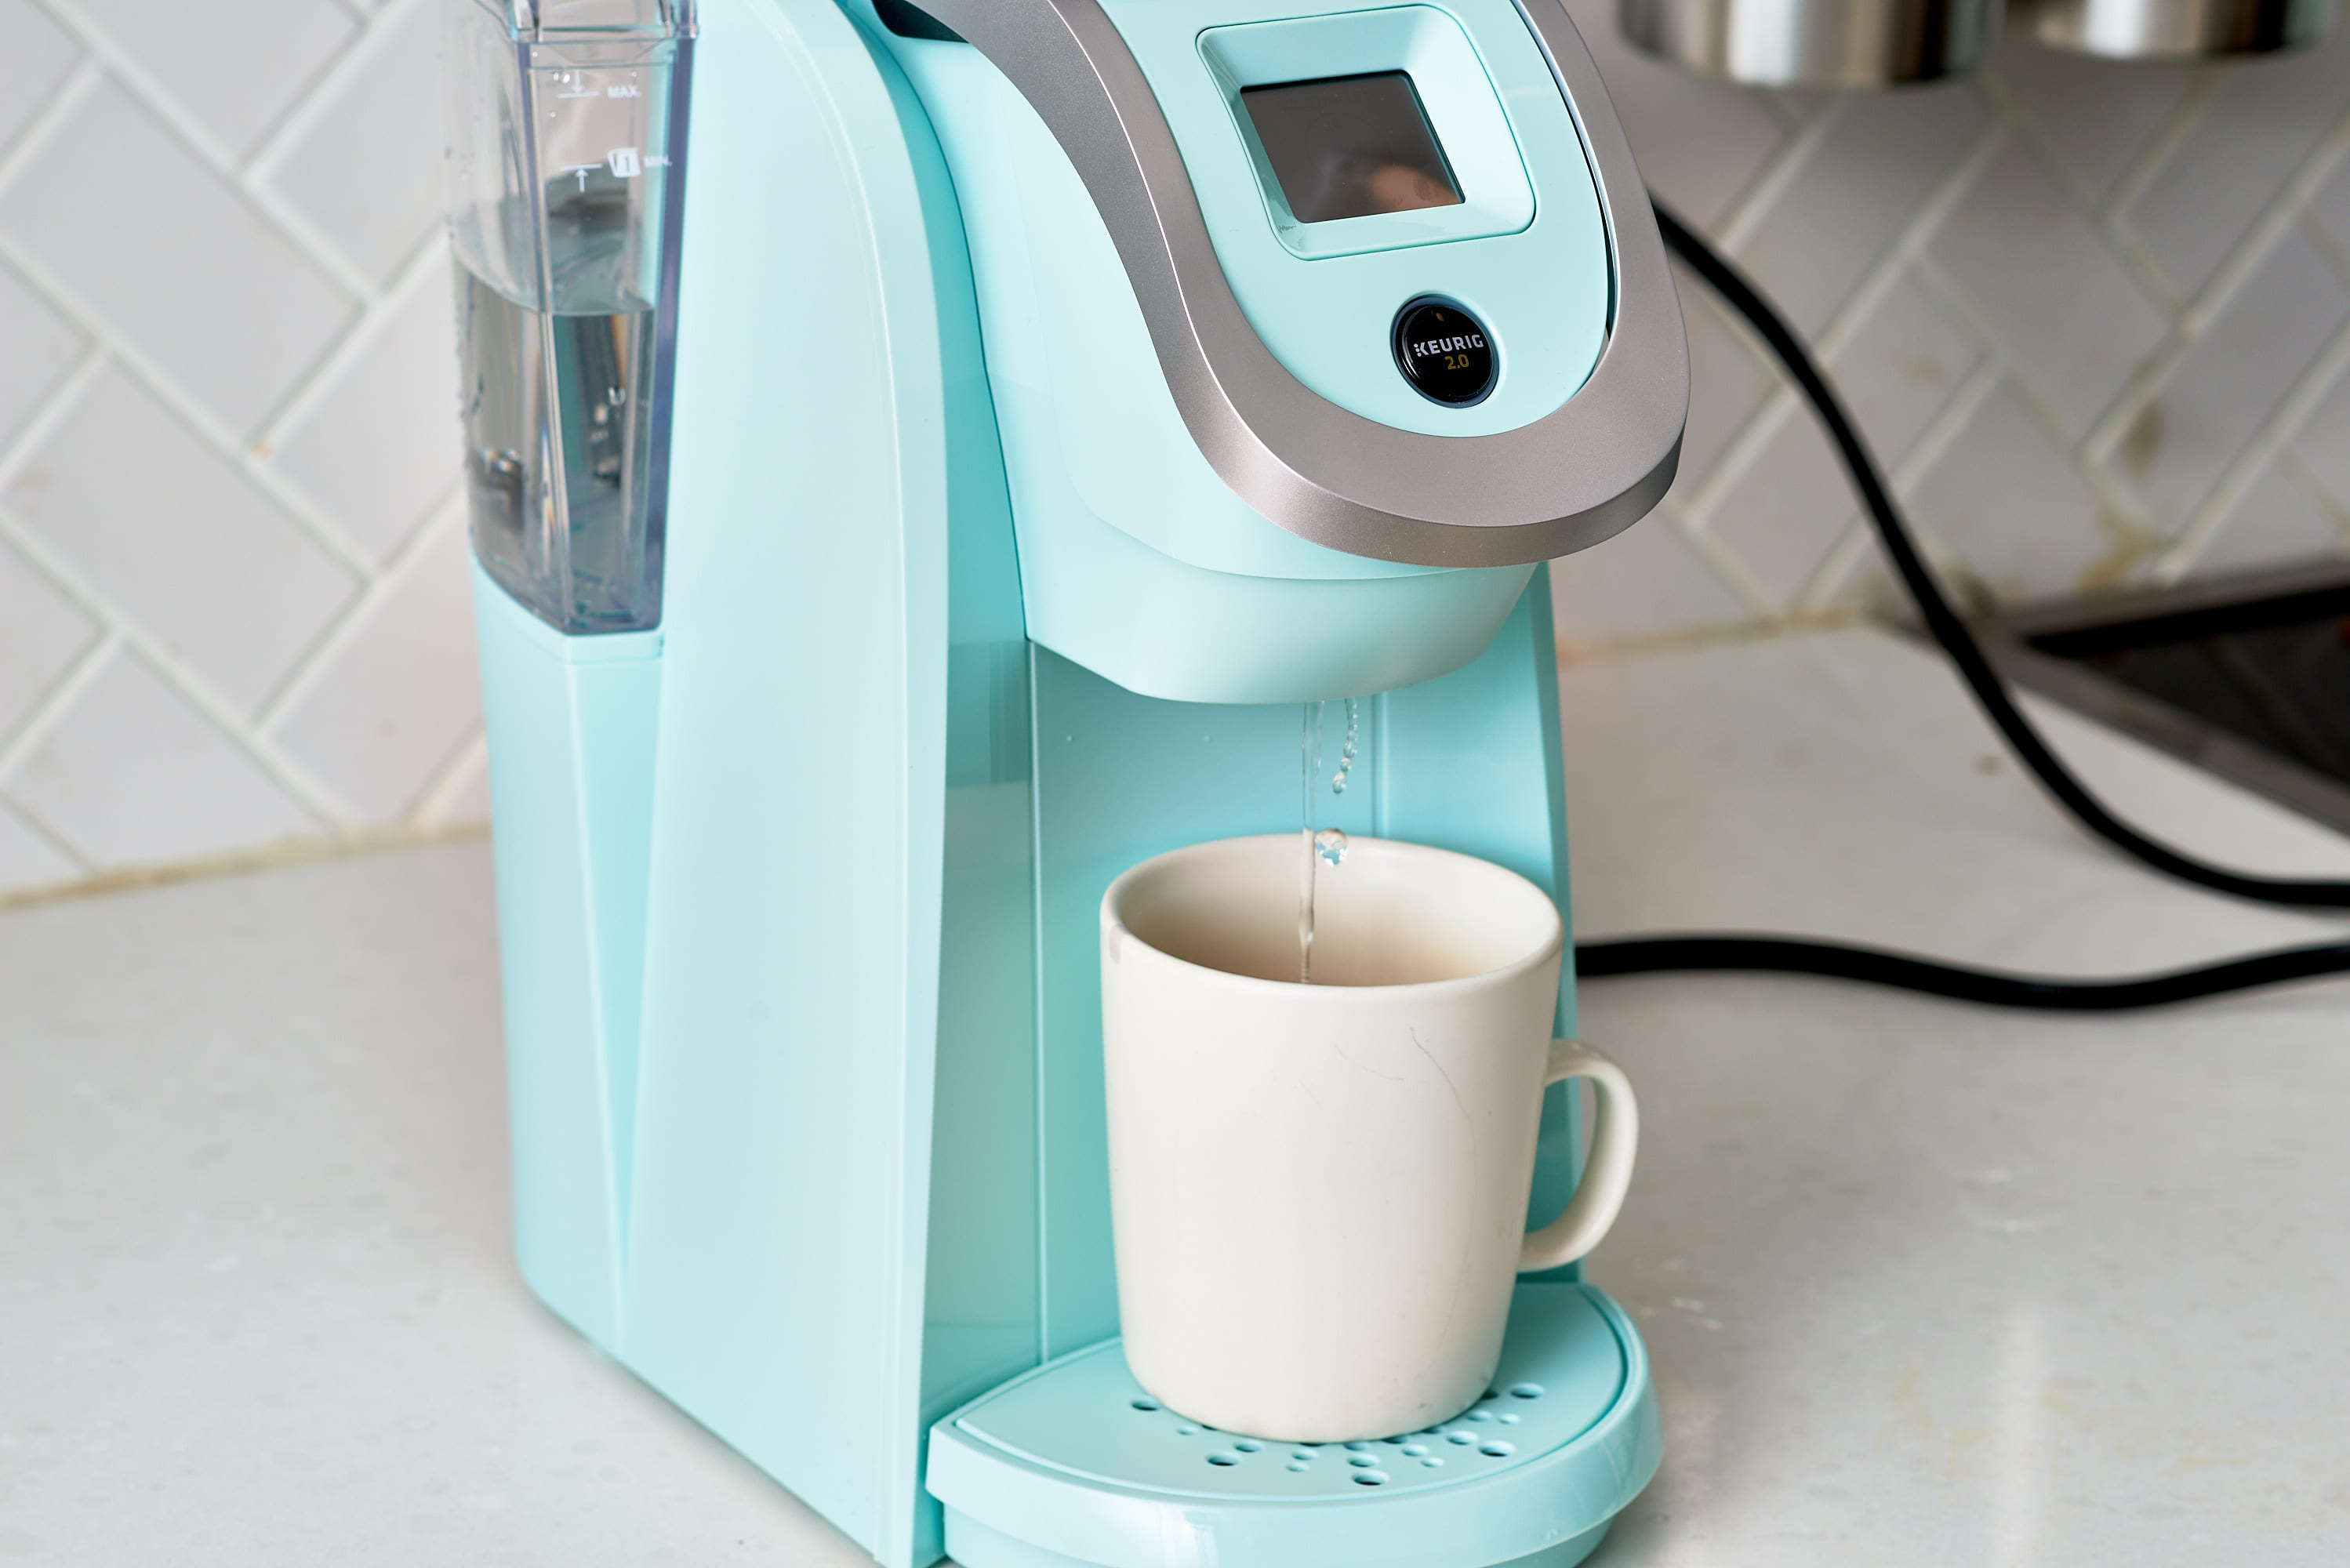 How to Clean a Keurig Coffee Maker | Kitchn